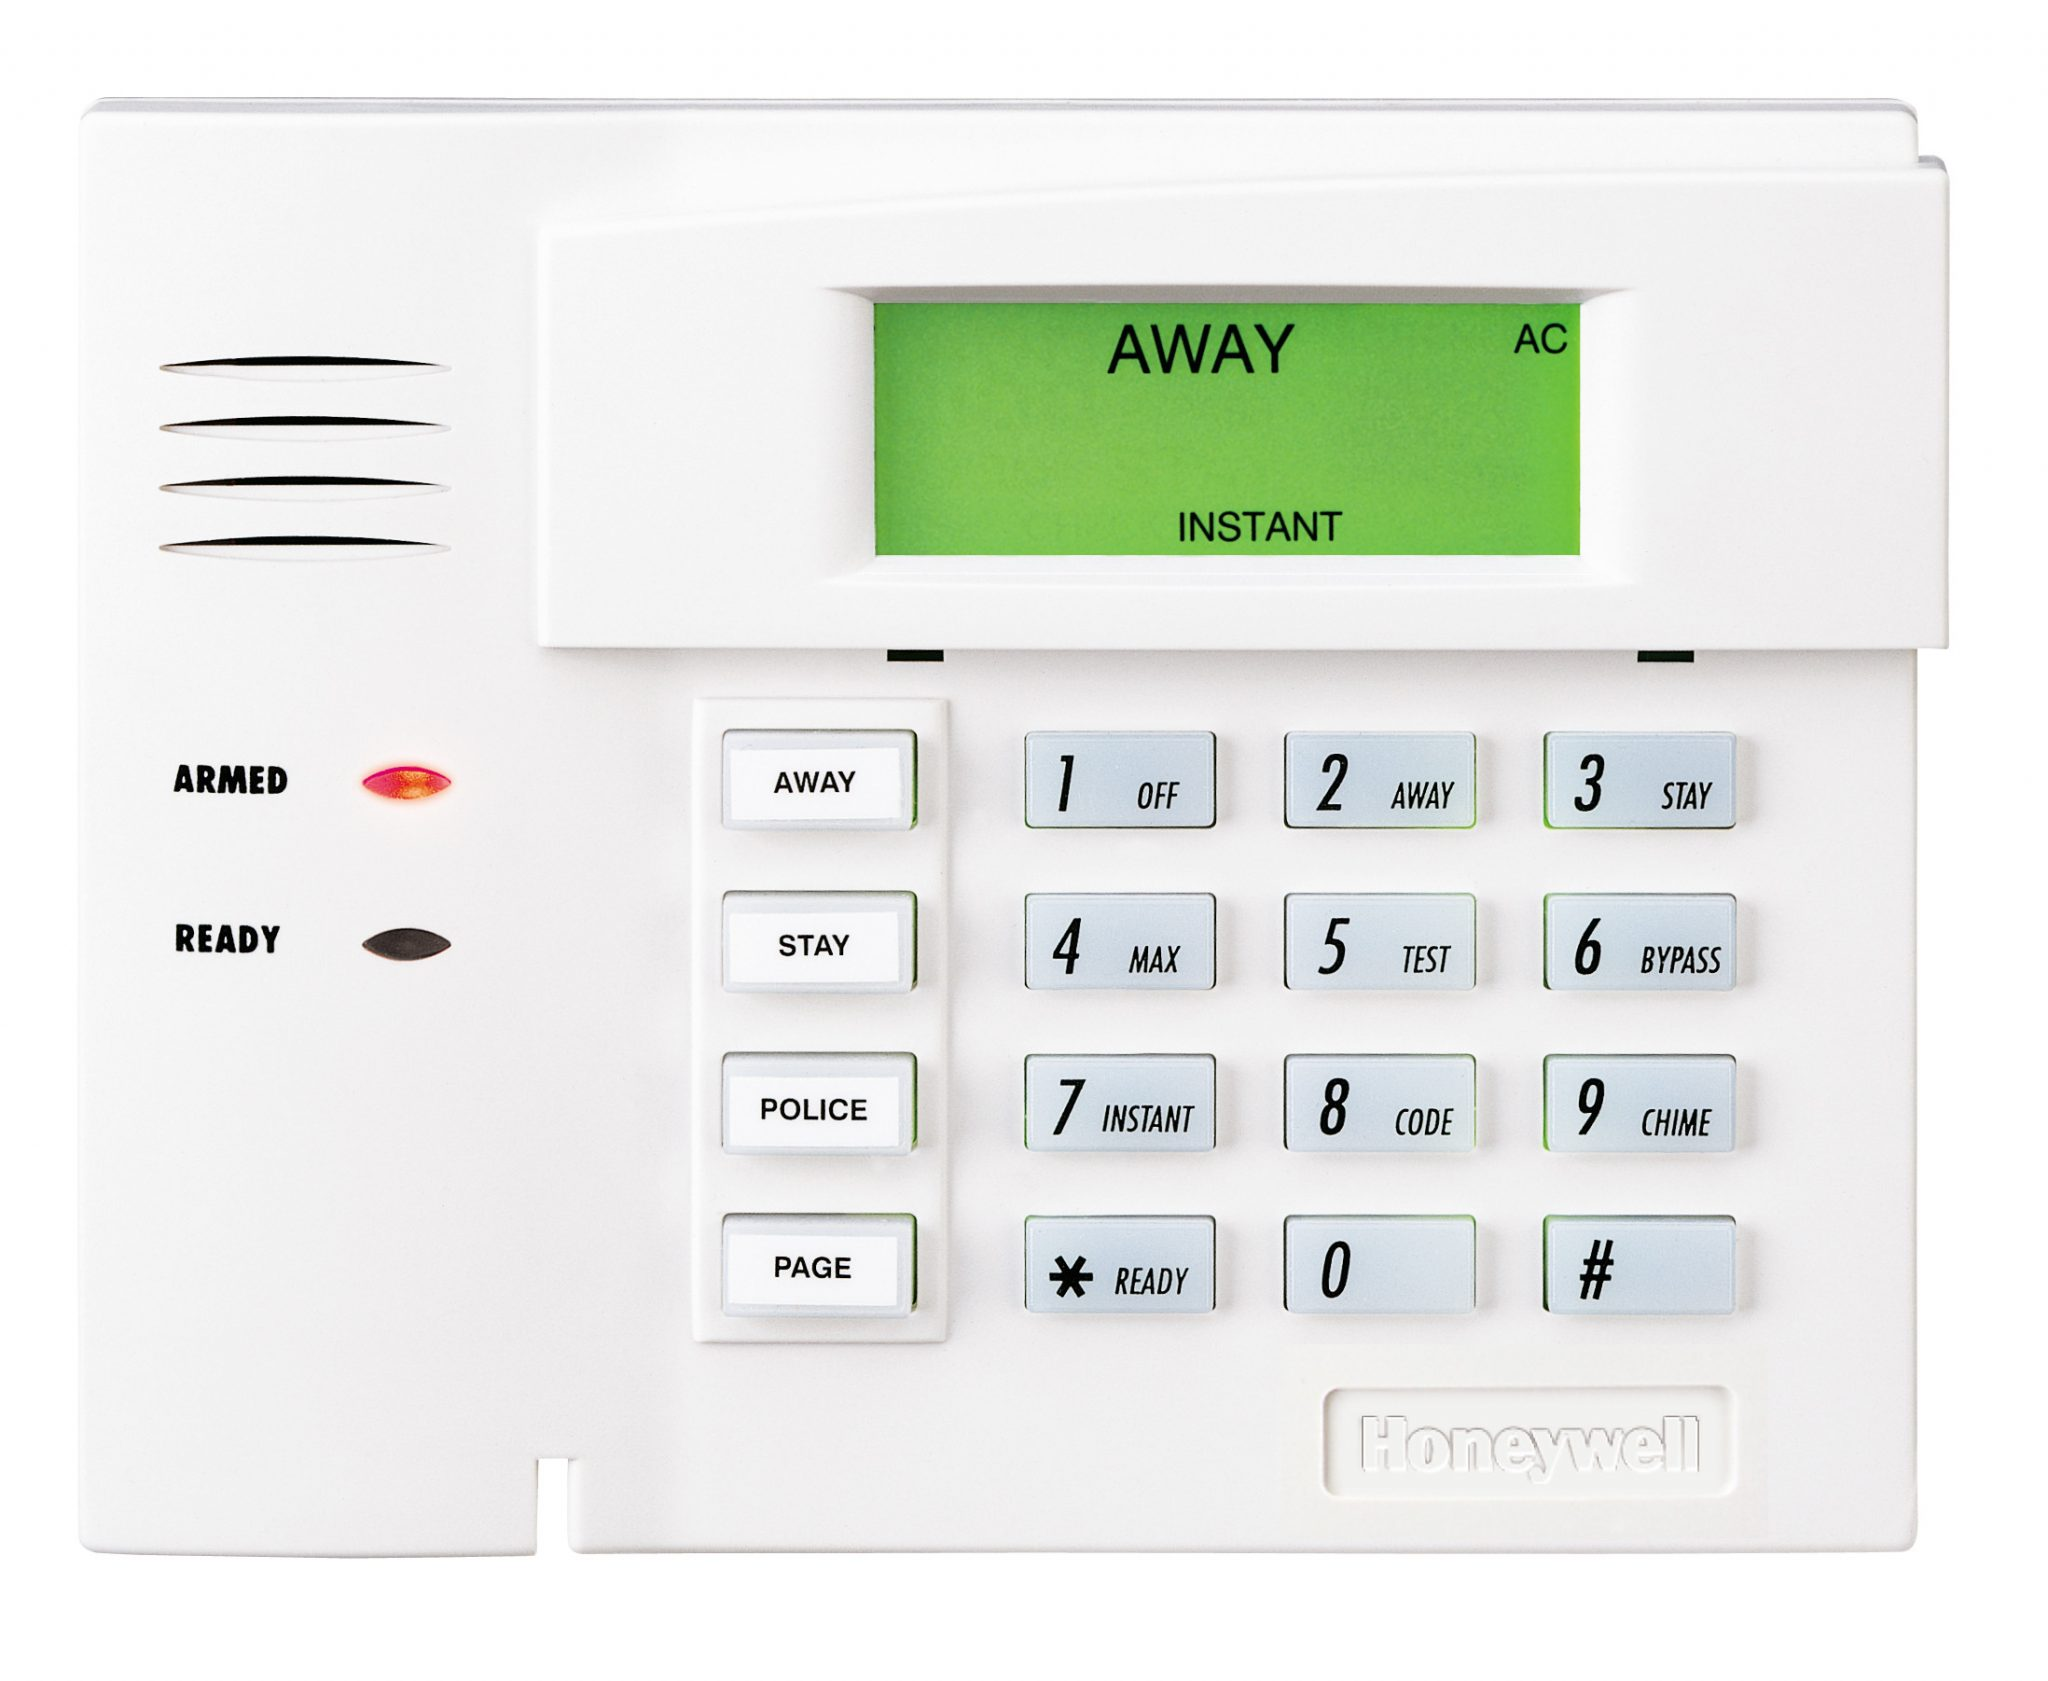 how to bypass a zone on honeywell vista security system shield rh shieldkansascity com ademco vista 15 alarm system manual honeywell vista alarm system manual